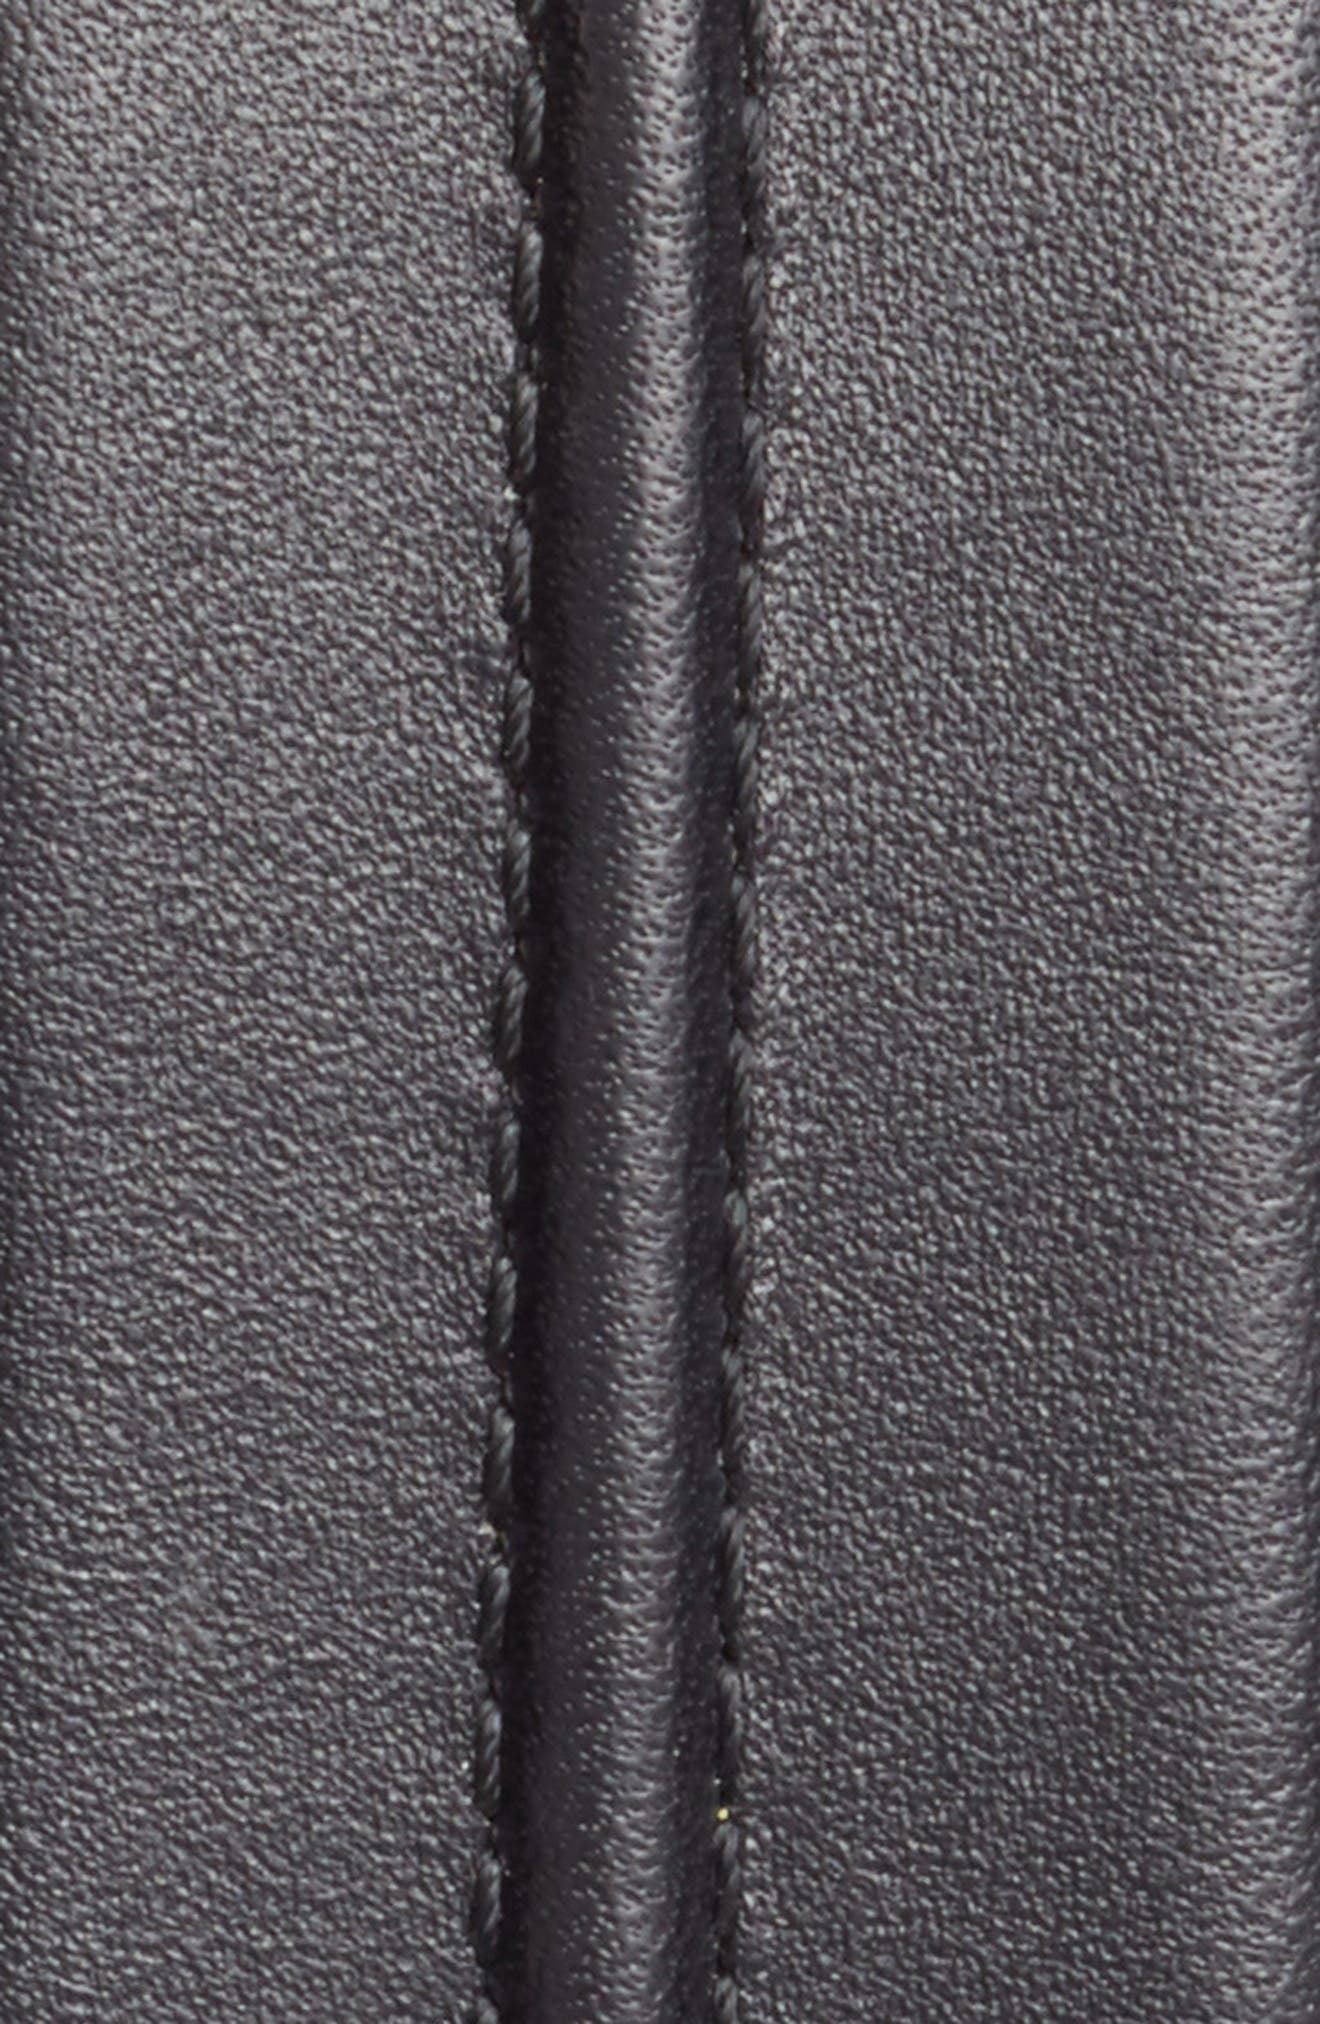 Pinched Seam Leather Belt,                             Alternate thumbnail 2, color,                             001